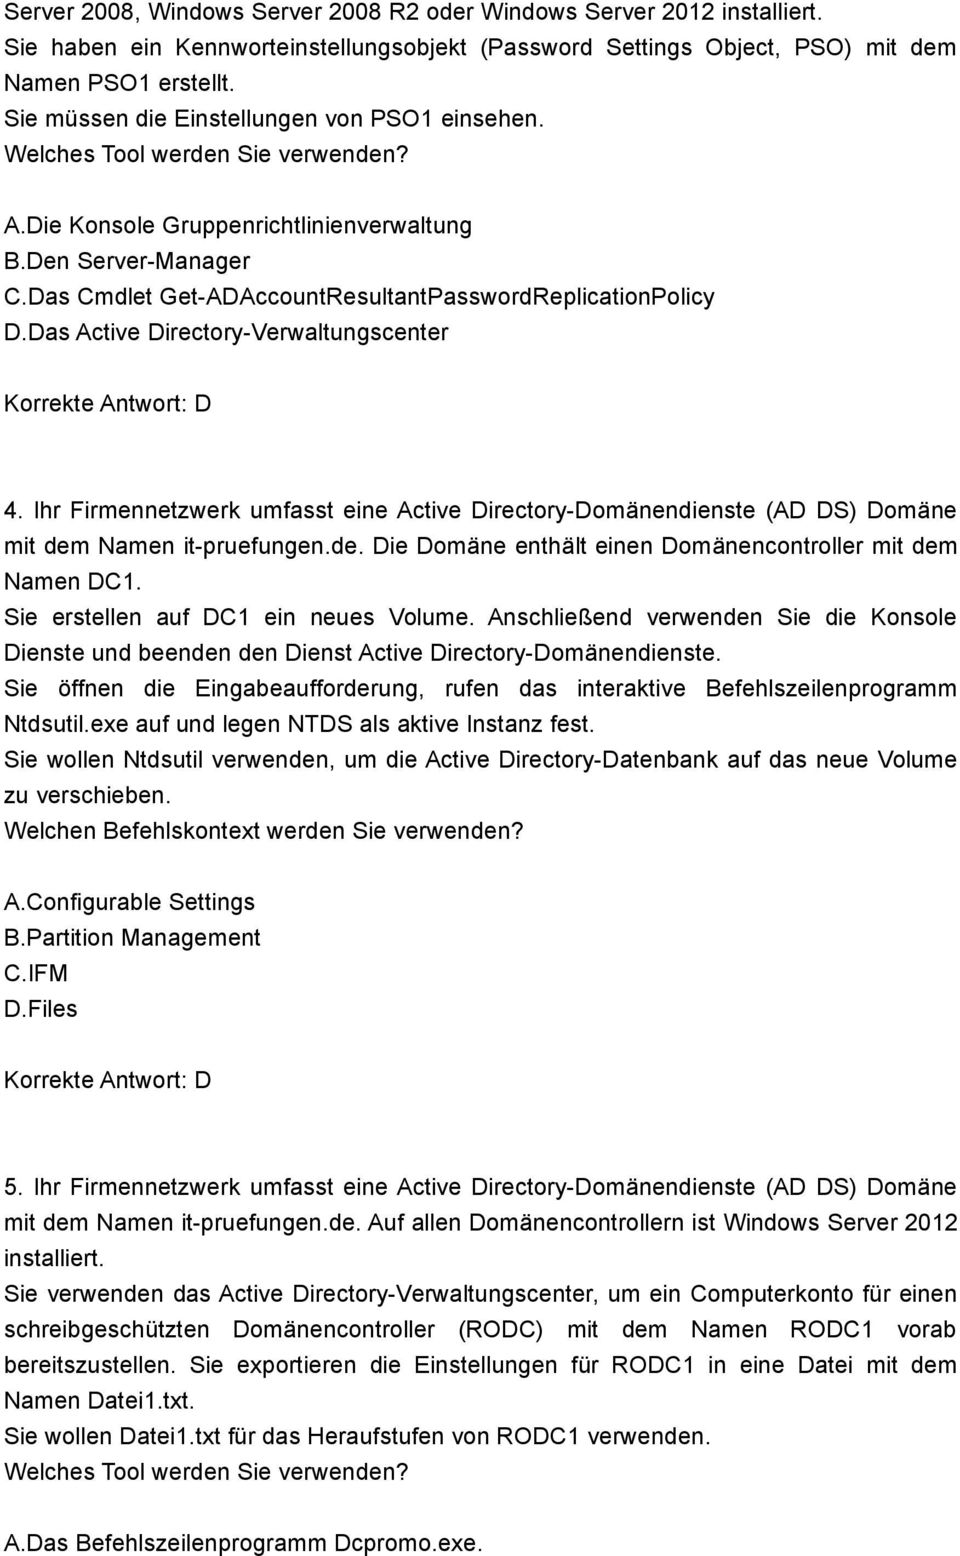 Das Cmdlet Get-ADAccountResultantPasswordReplicationPolicy D.Das Active Directory-Verwaltungscenter 4.